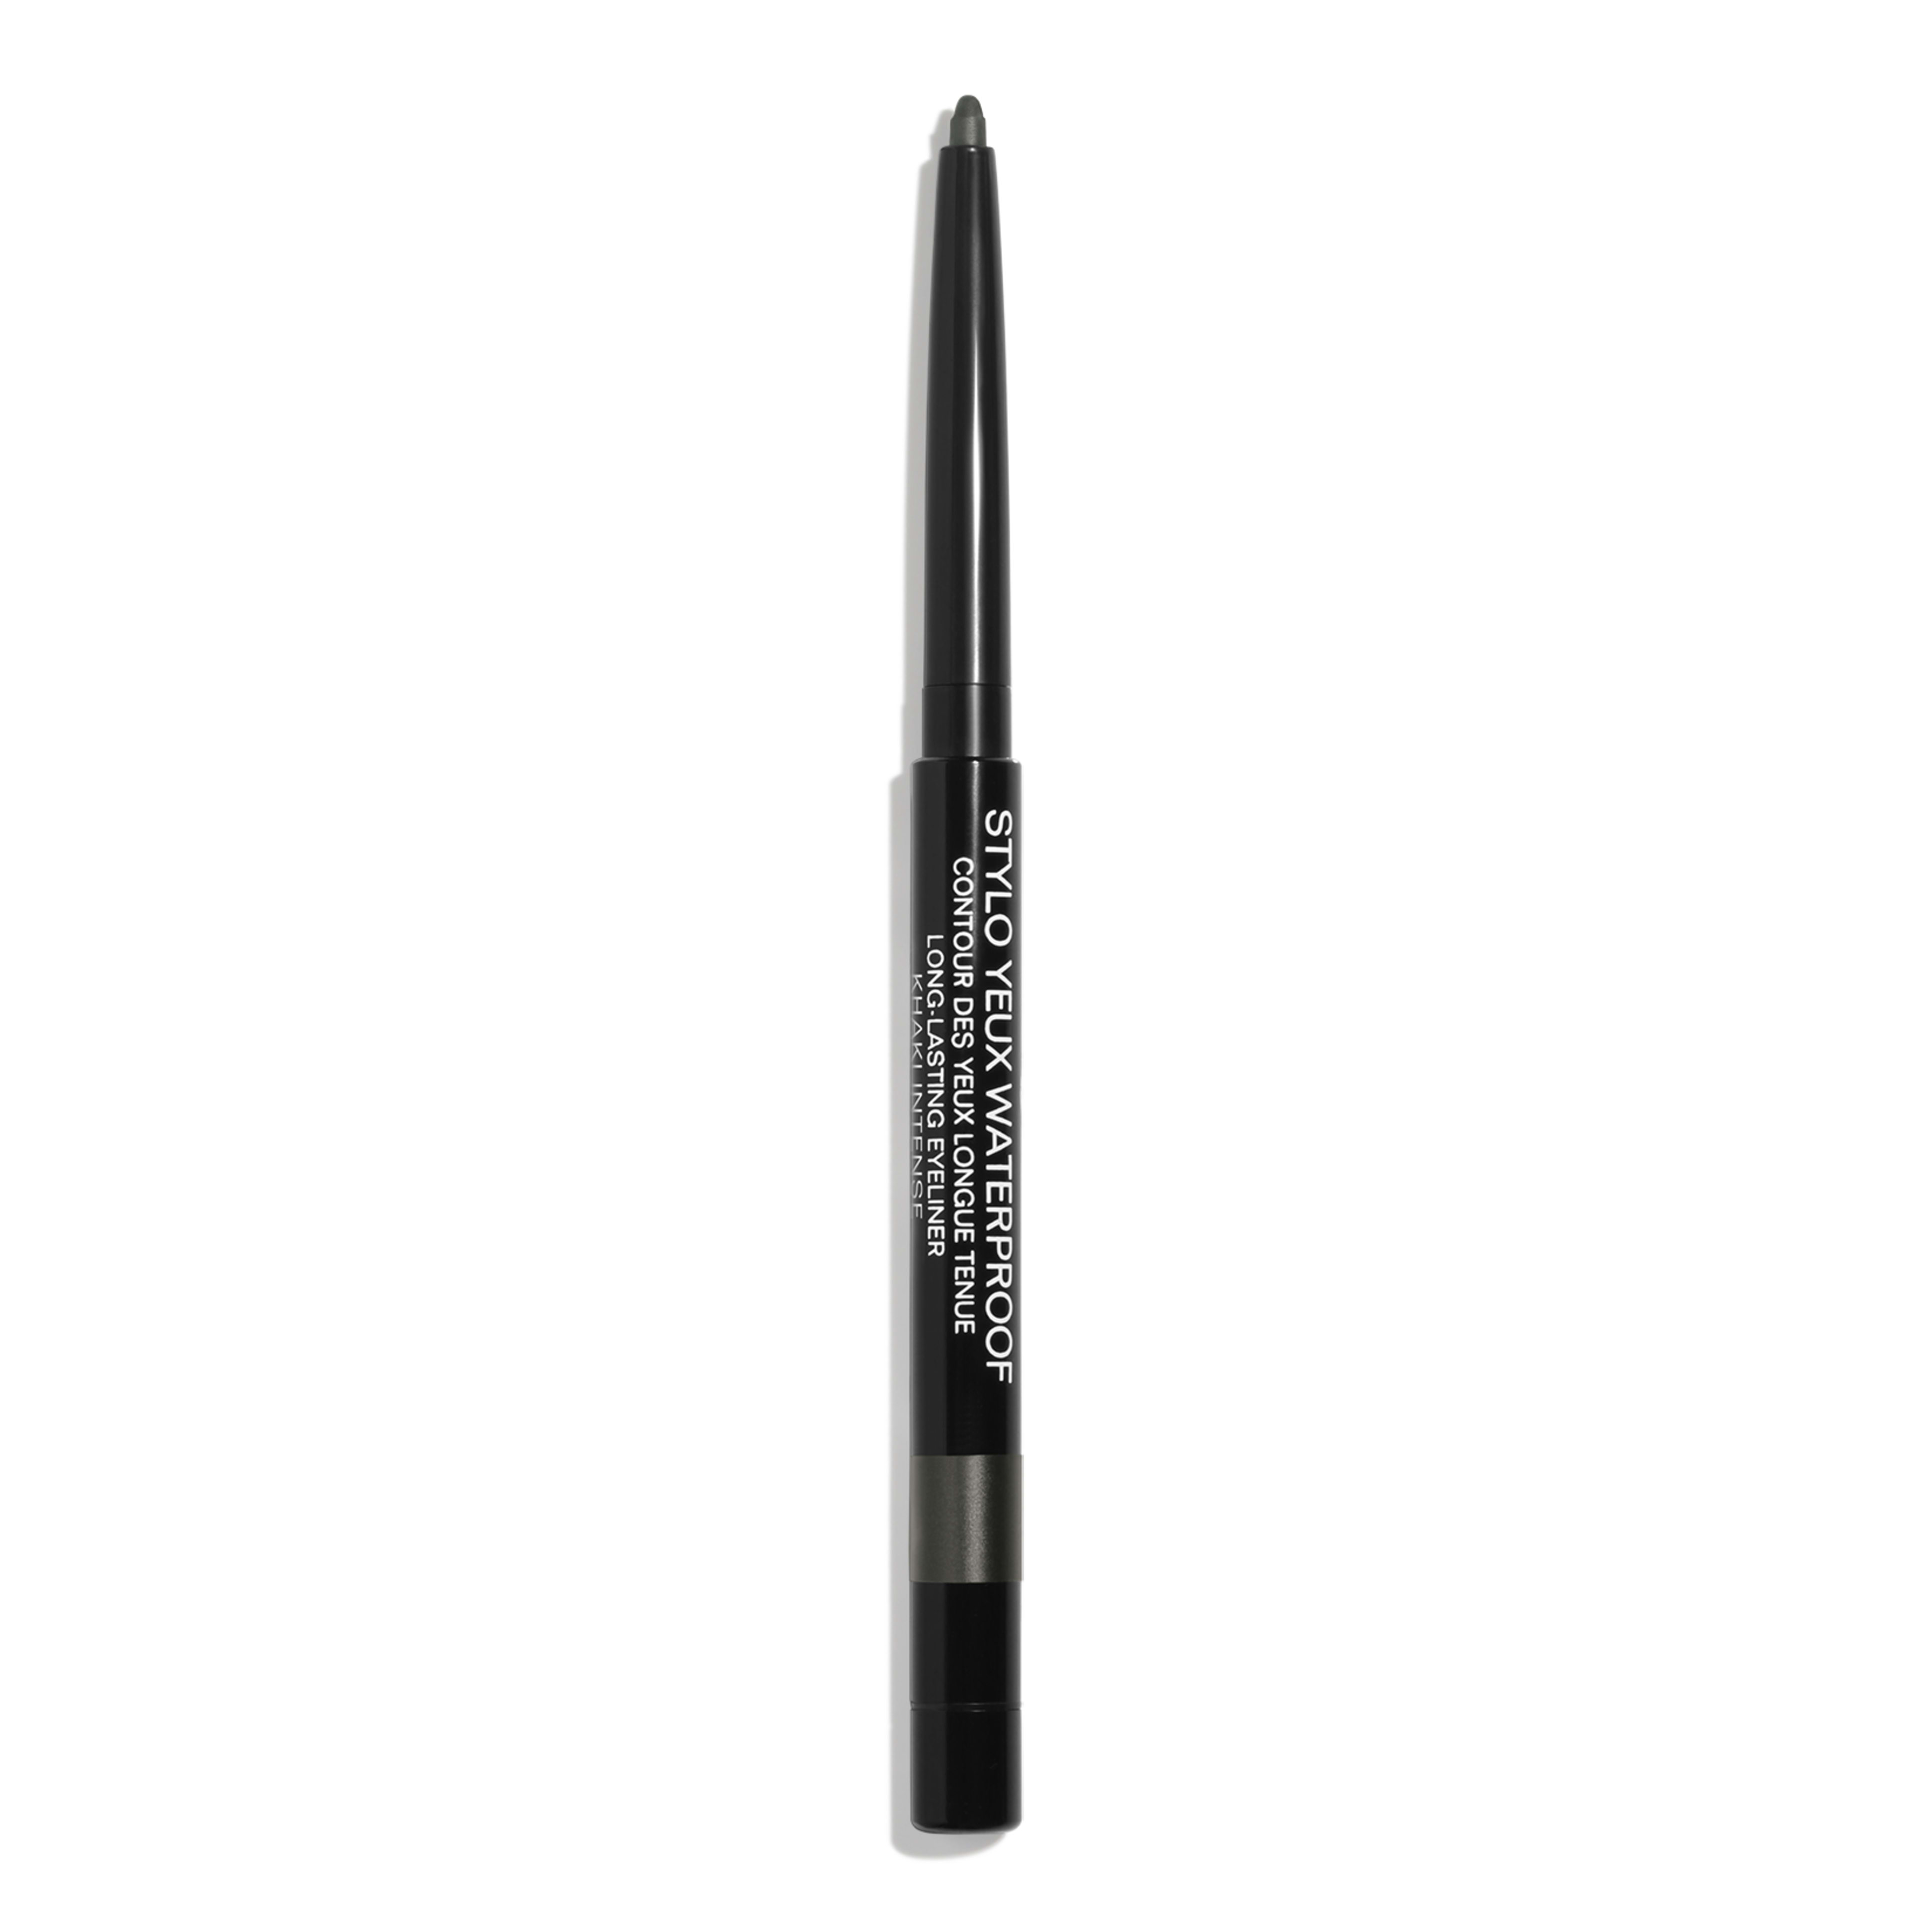 STYLO YEUX WATERPROOF  - makeup - 0.3g - 預設視圖